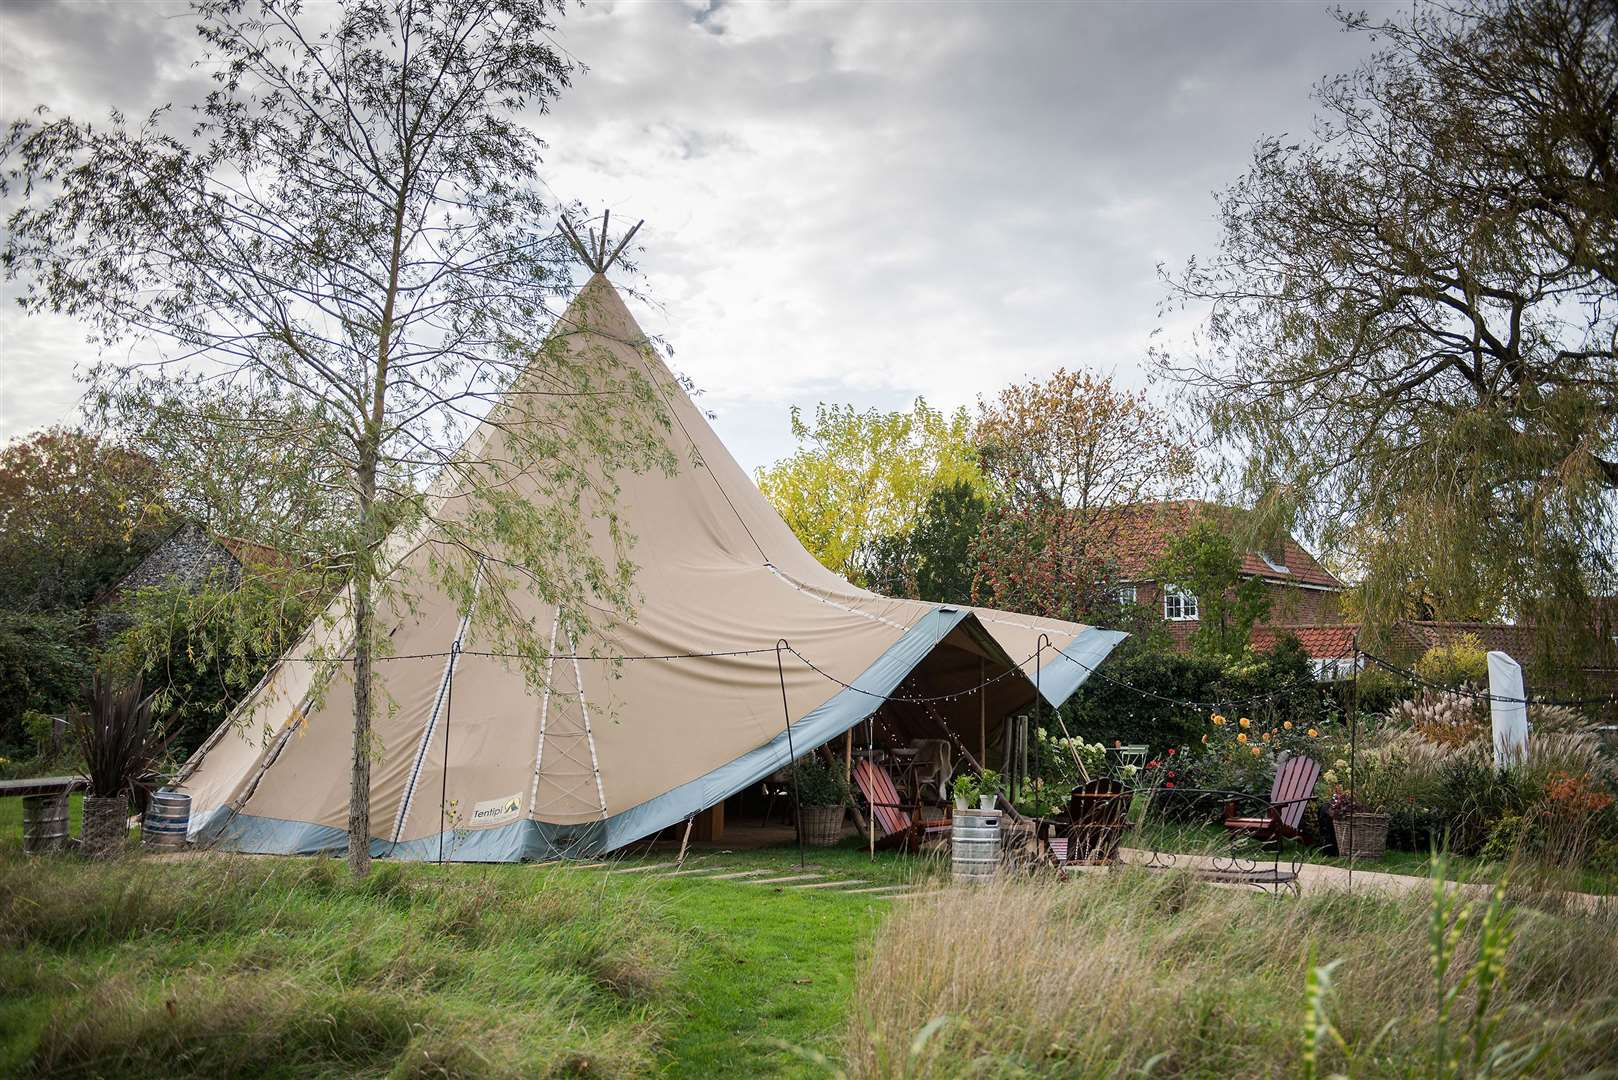 The cosy tipis have opened for the autumn / winter seasonPictures by Mark Westley